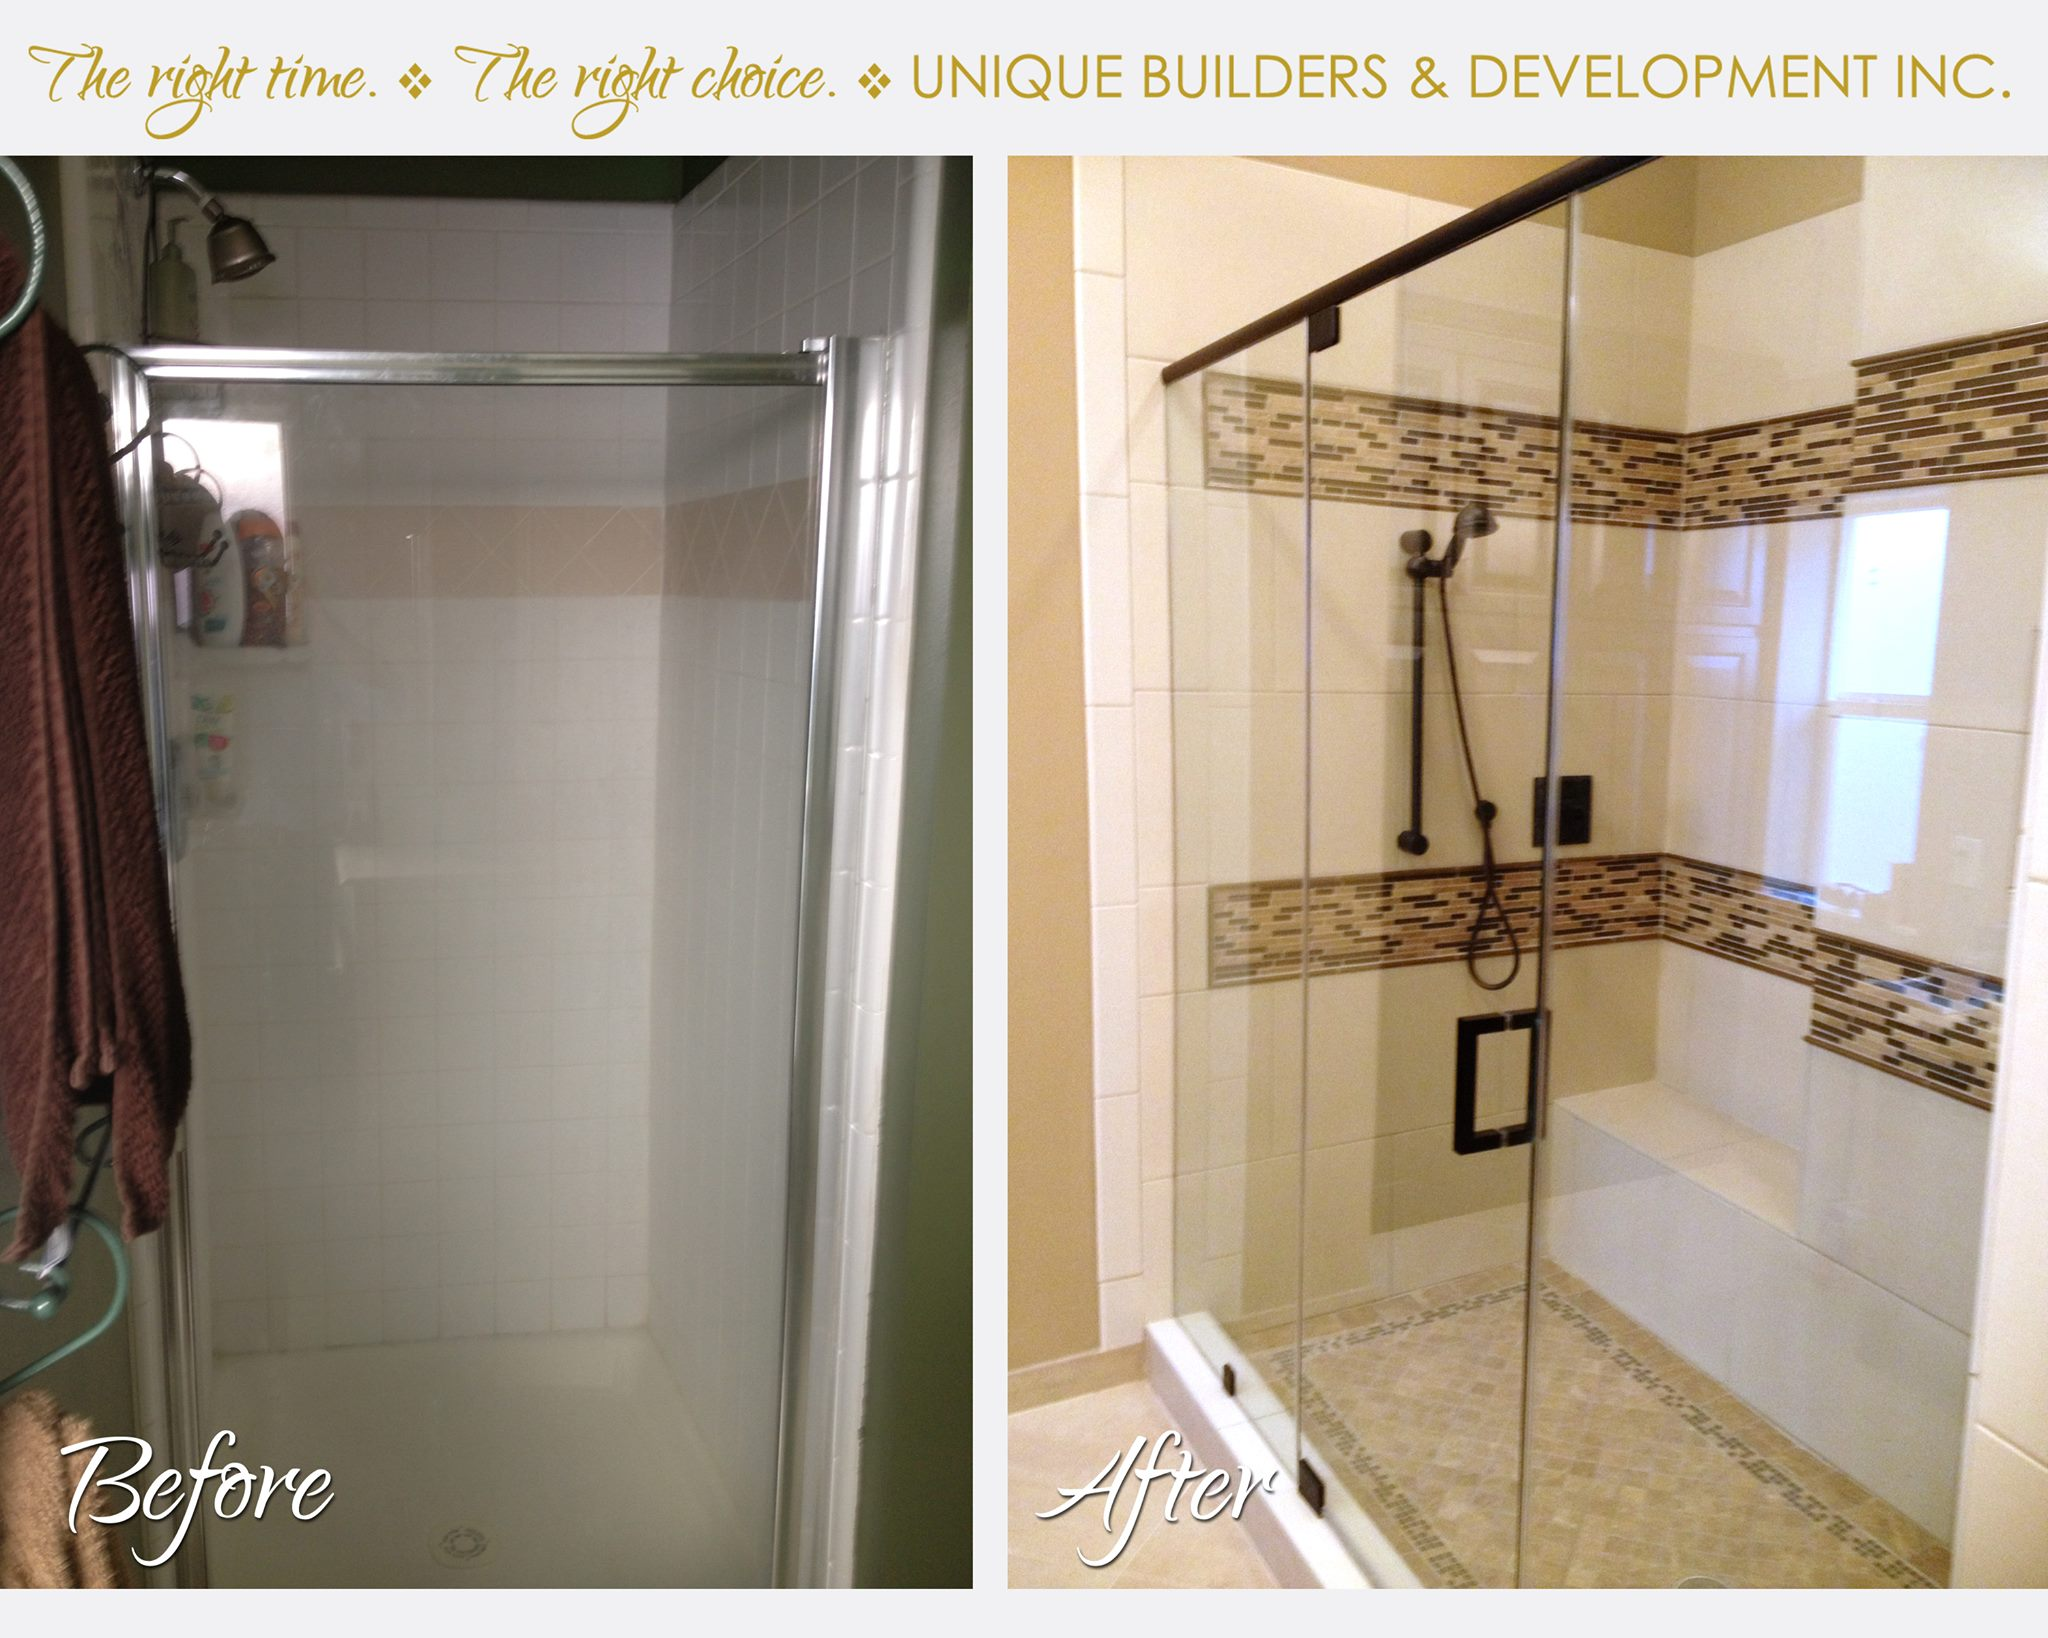 Before and After Bathroom Remodel Houston - UniqueBuildersTexas